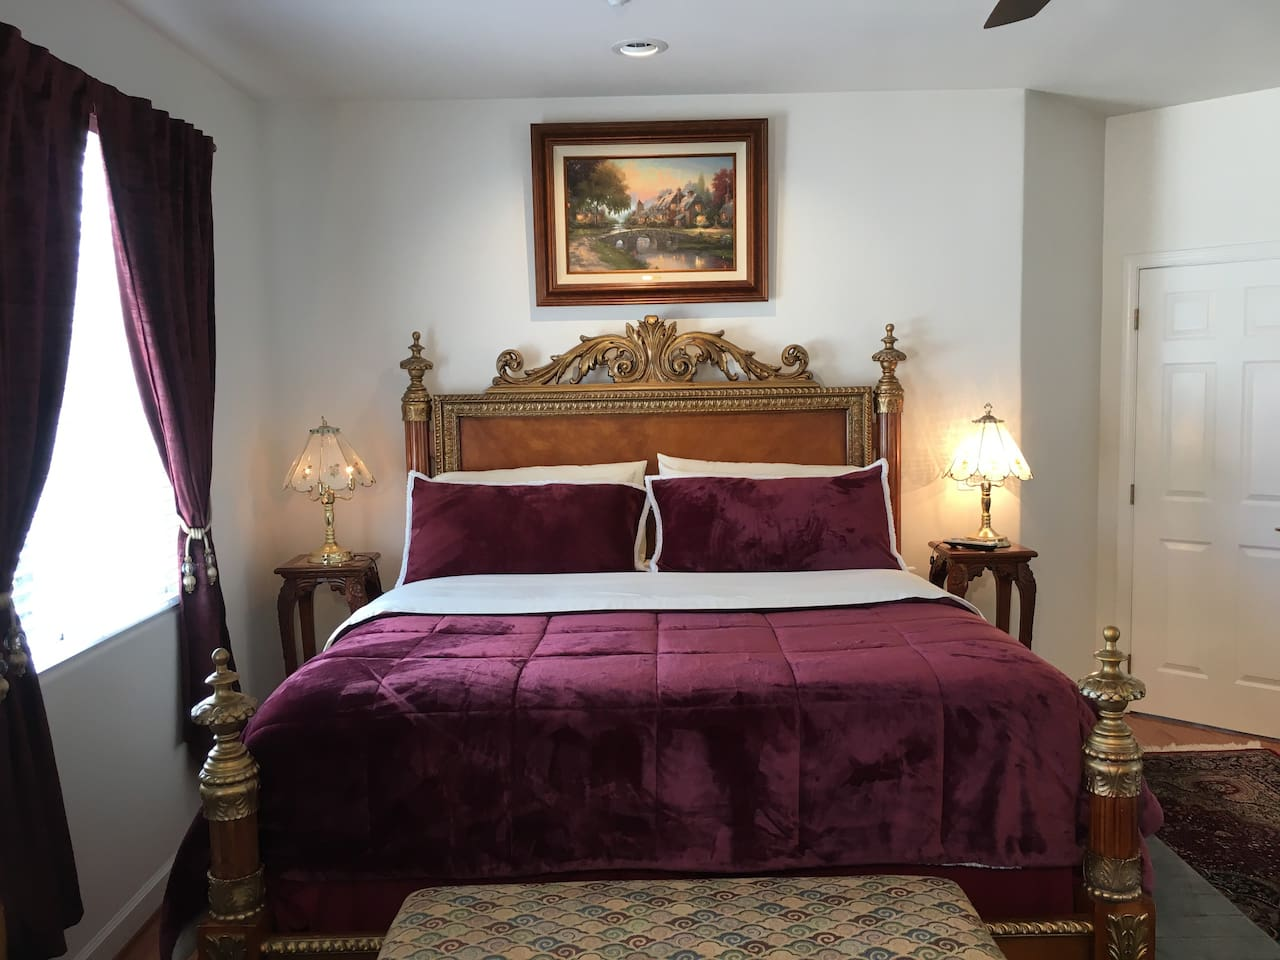 The Cloud 9 Room. This 400 square foot master suite comes appointed with a king bed, 55 in TV, dining nook, coffee maker, mini refrigerator, mini library, desk,  bath room with double sinks,  large  bath tub, large shower and private  toilet room.